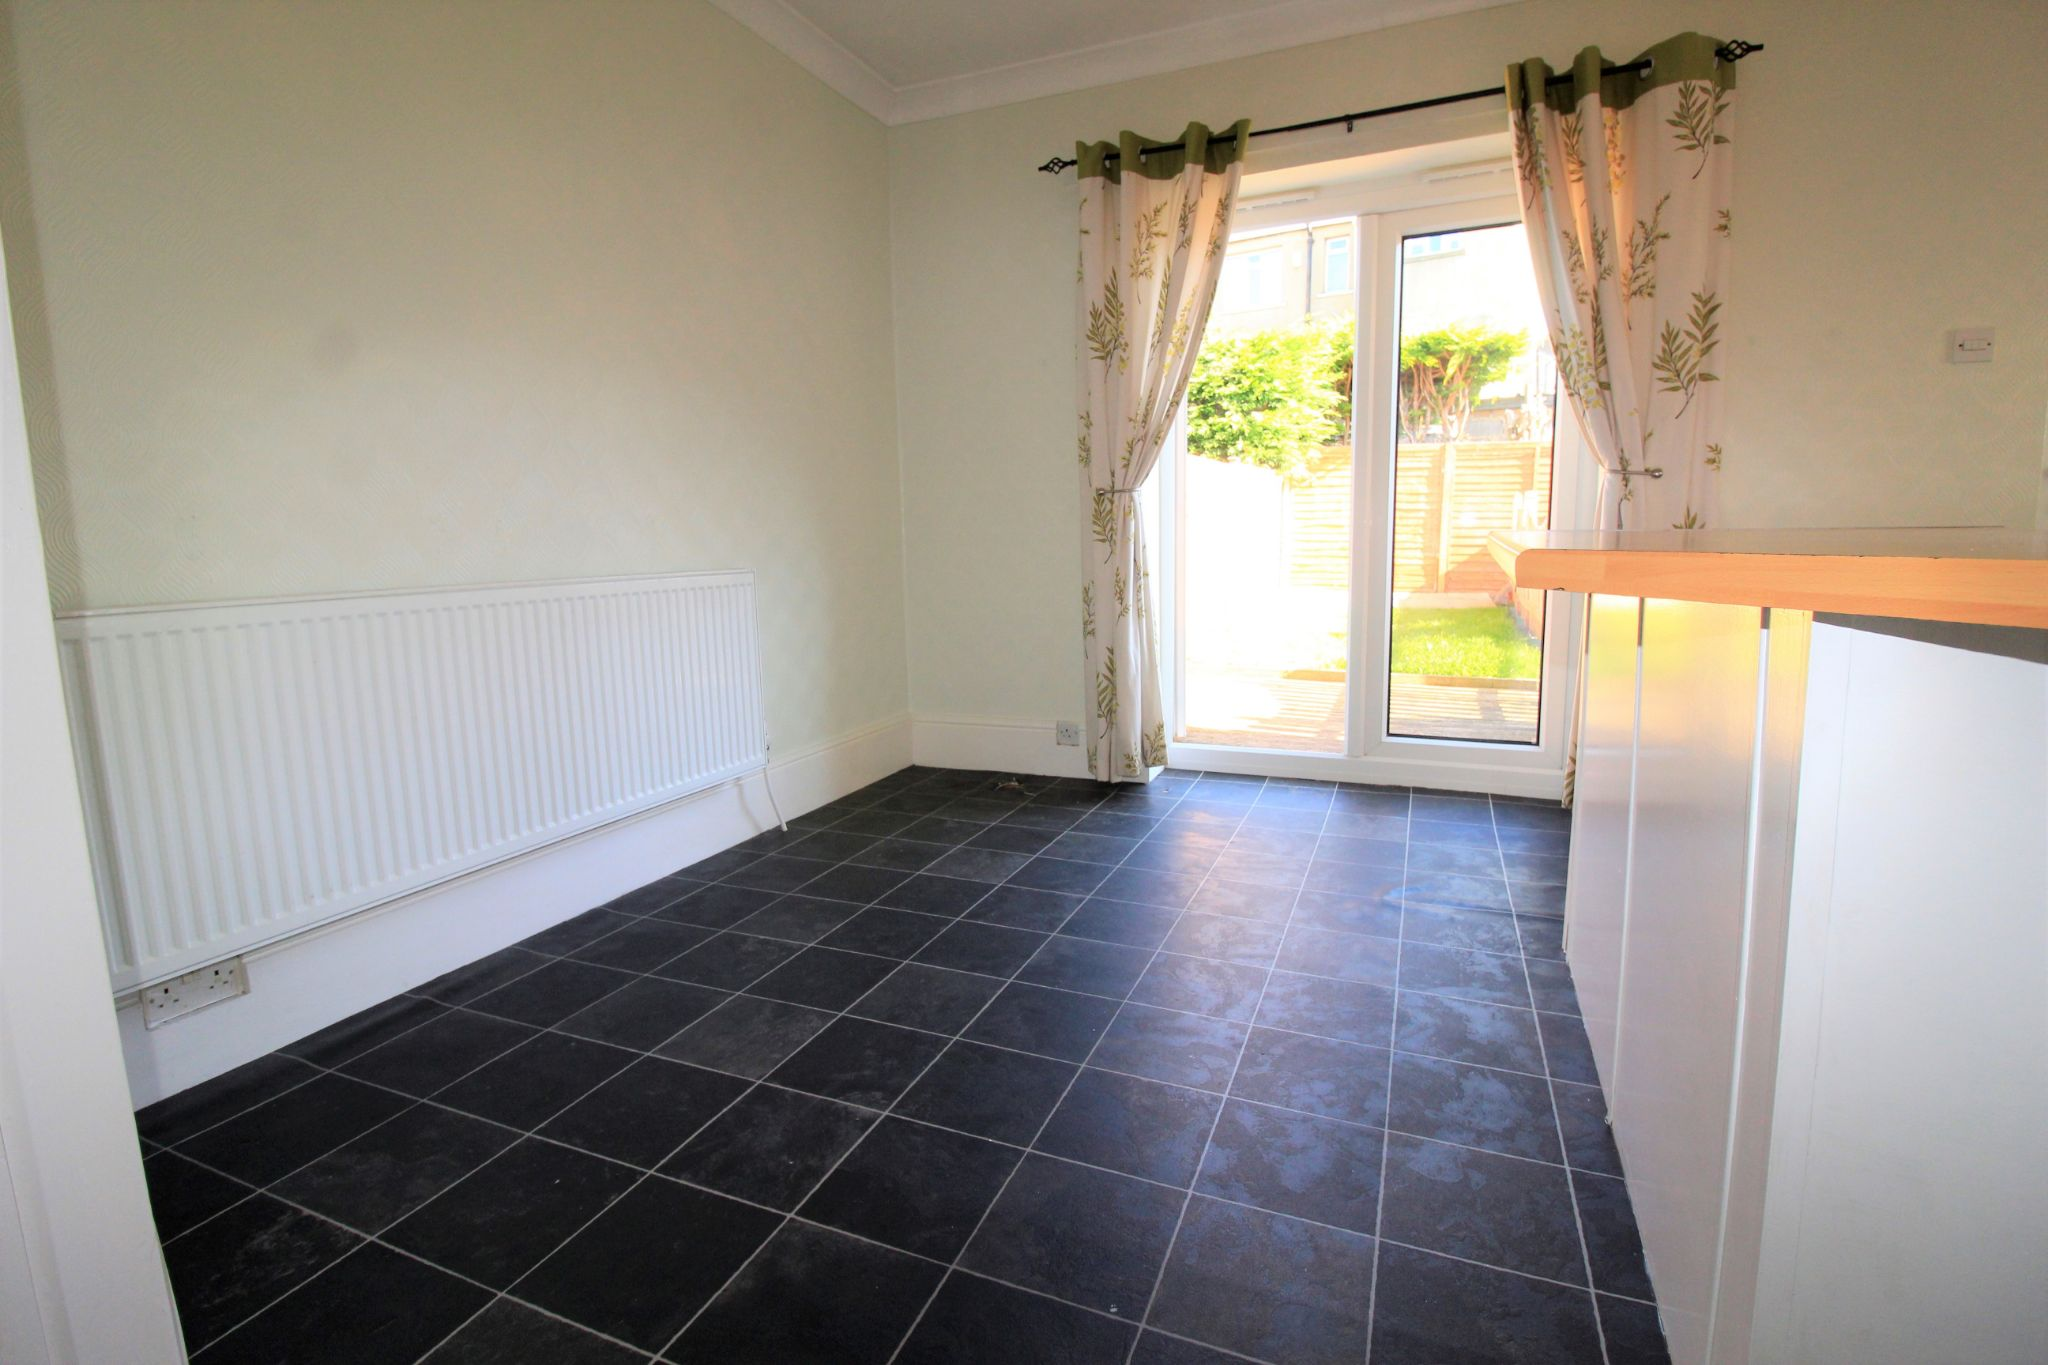 2 bedroom semi-detached house Let in Bradford - Dining area